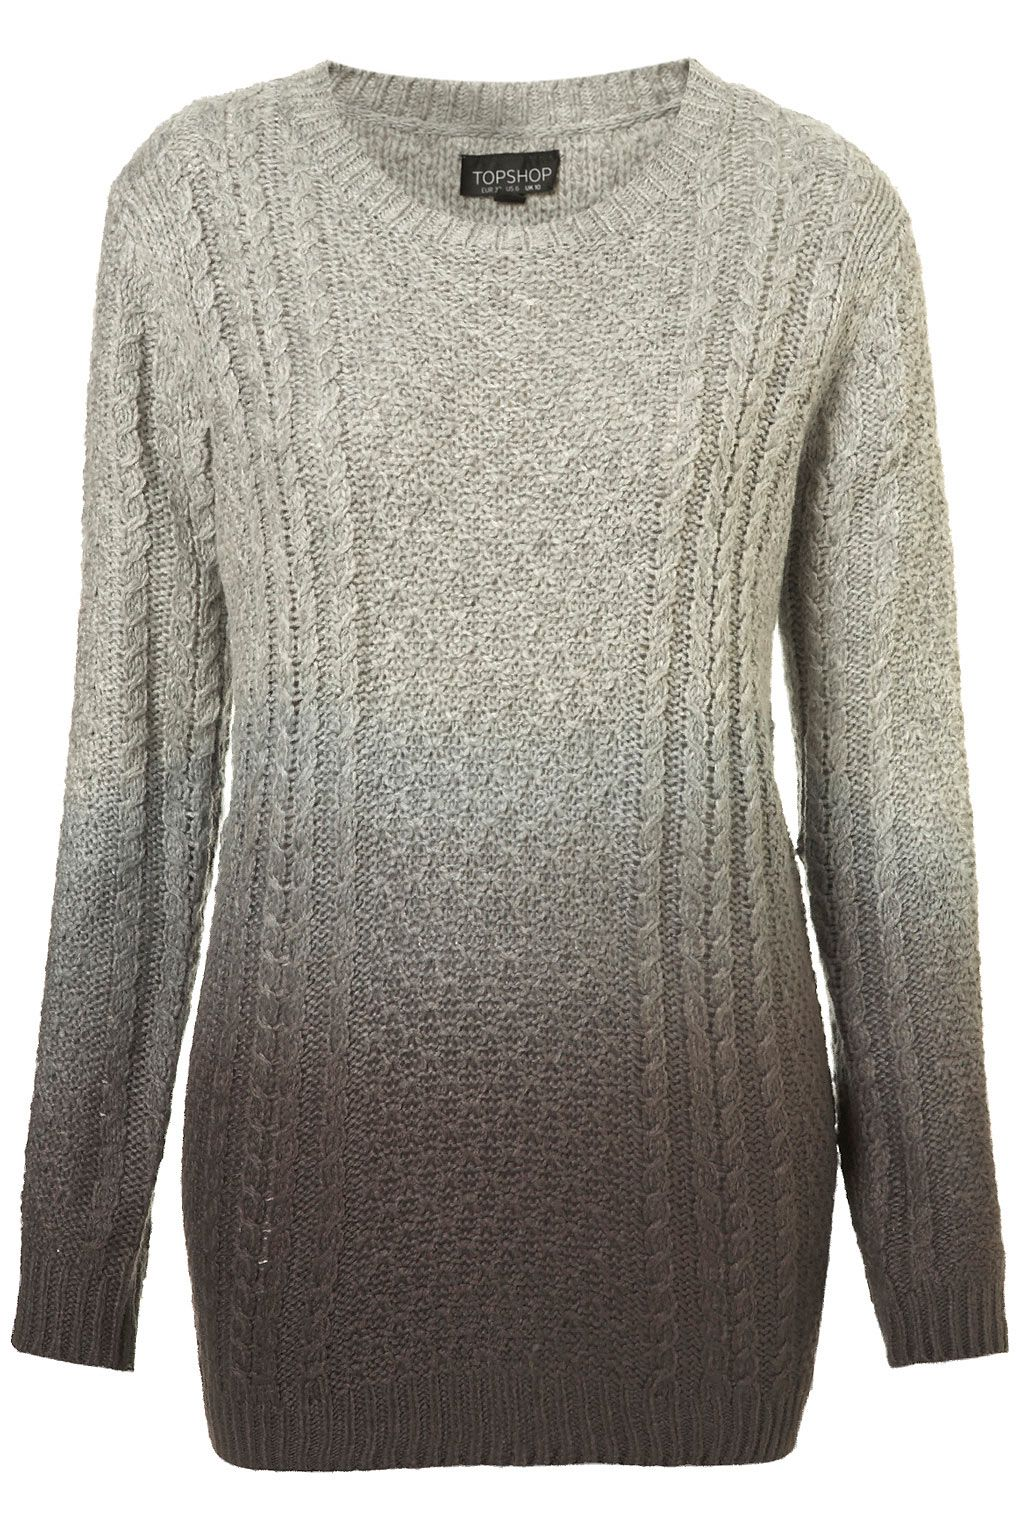 subtle ombre cable sweater : Topshop | ::: S T Y L E ...